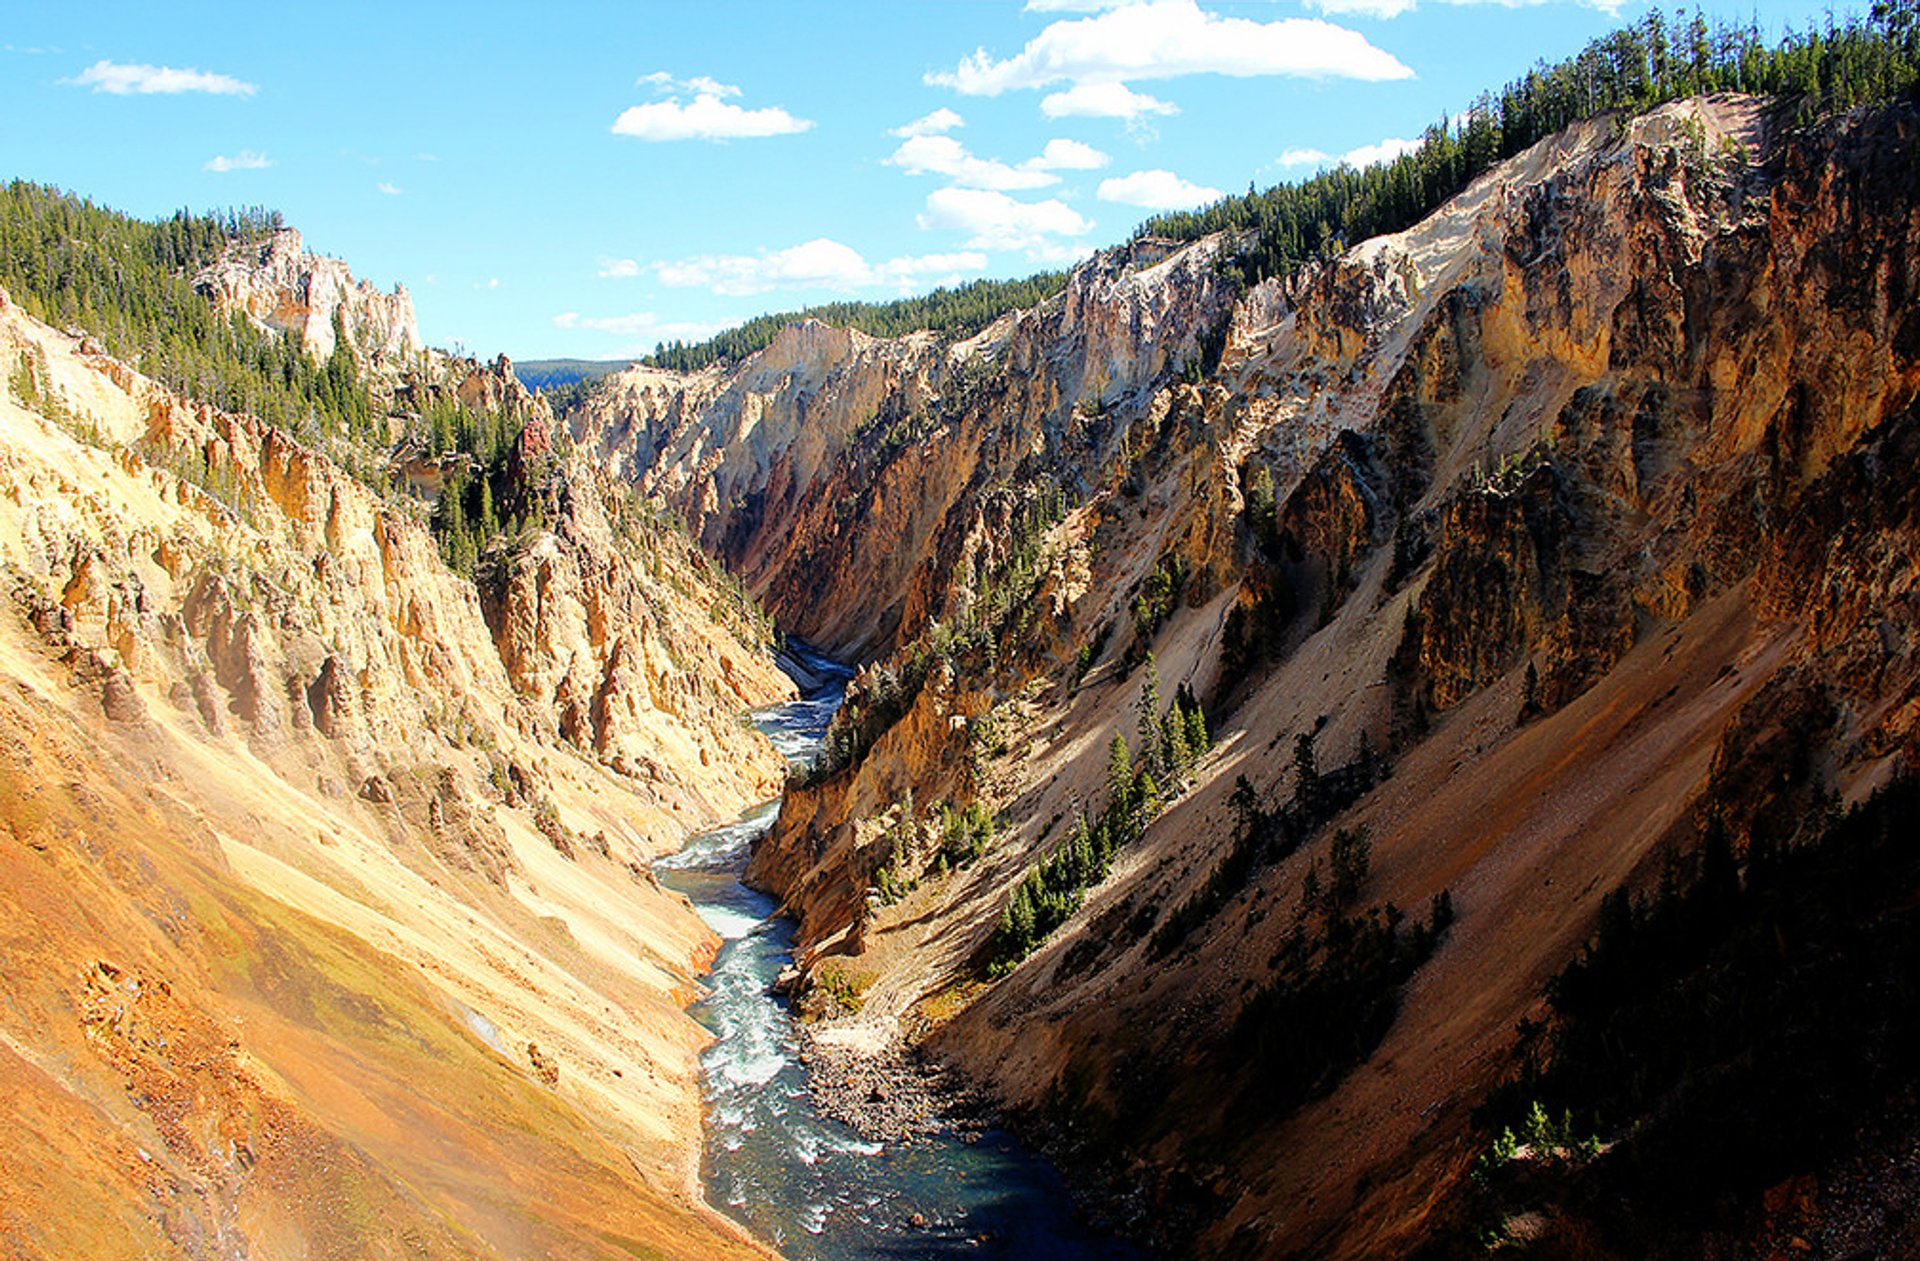 Grand Canyon of the Yellowstone in Yellowstone National Park 2020 - Best Time